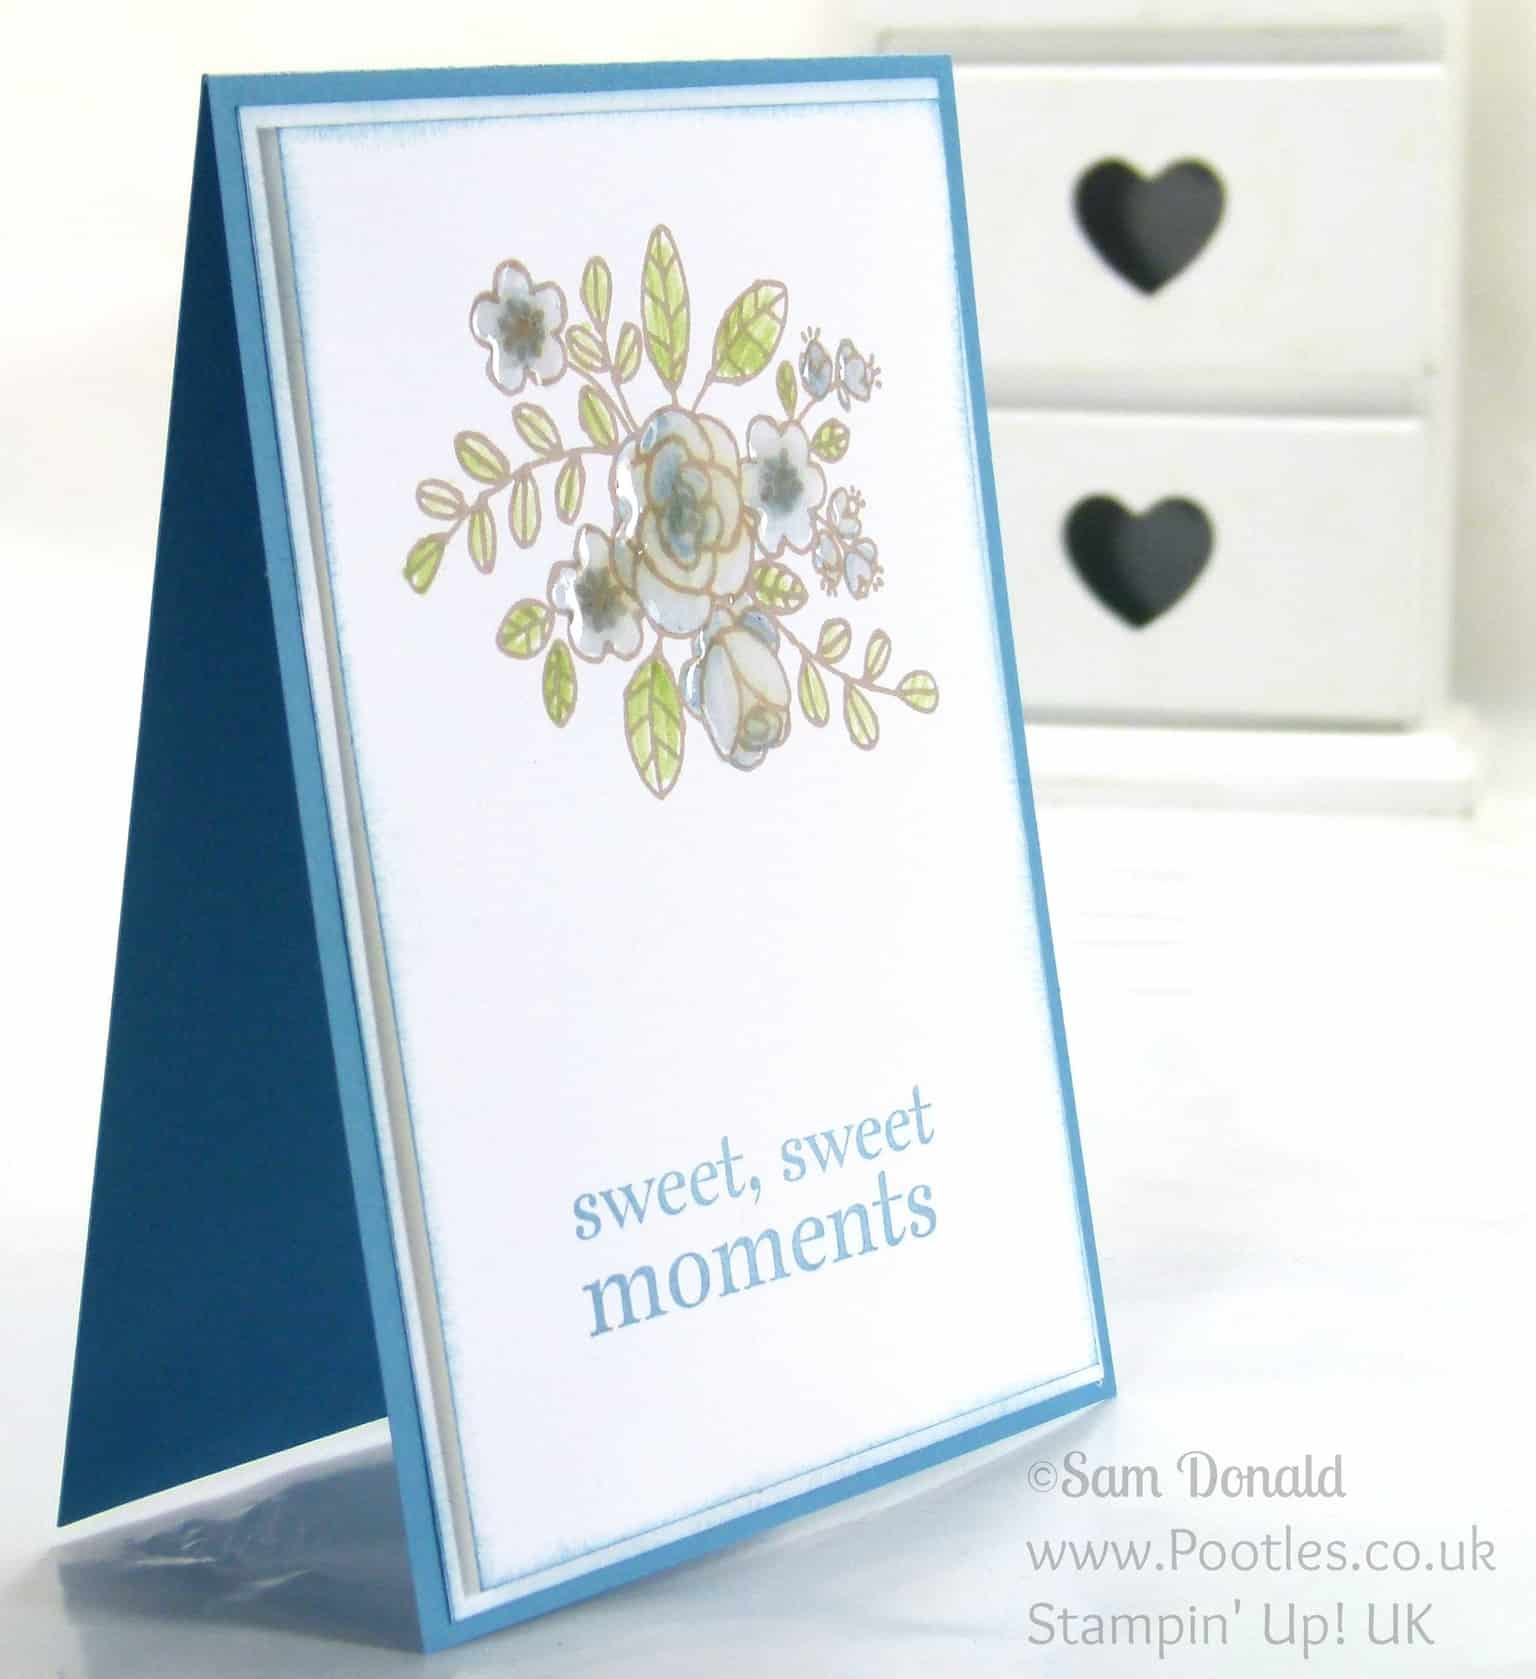 Stampin' Up! UK Independent Demonstrator Pootles. So Very Grateful for a Happy Day